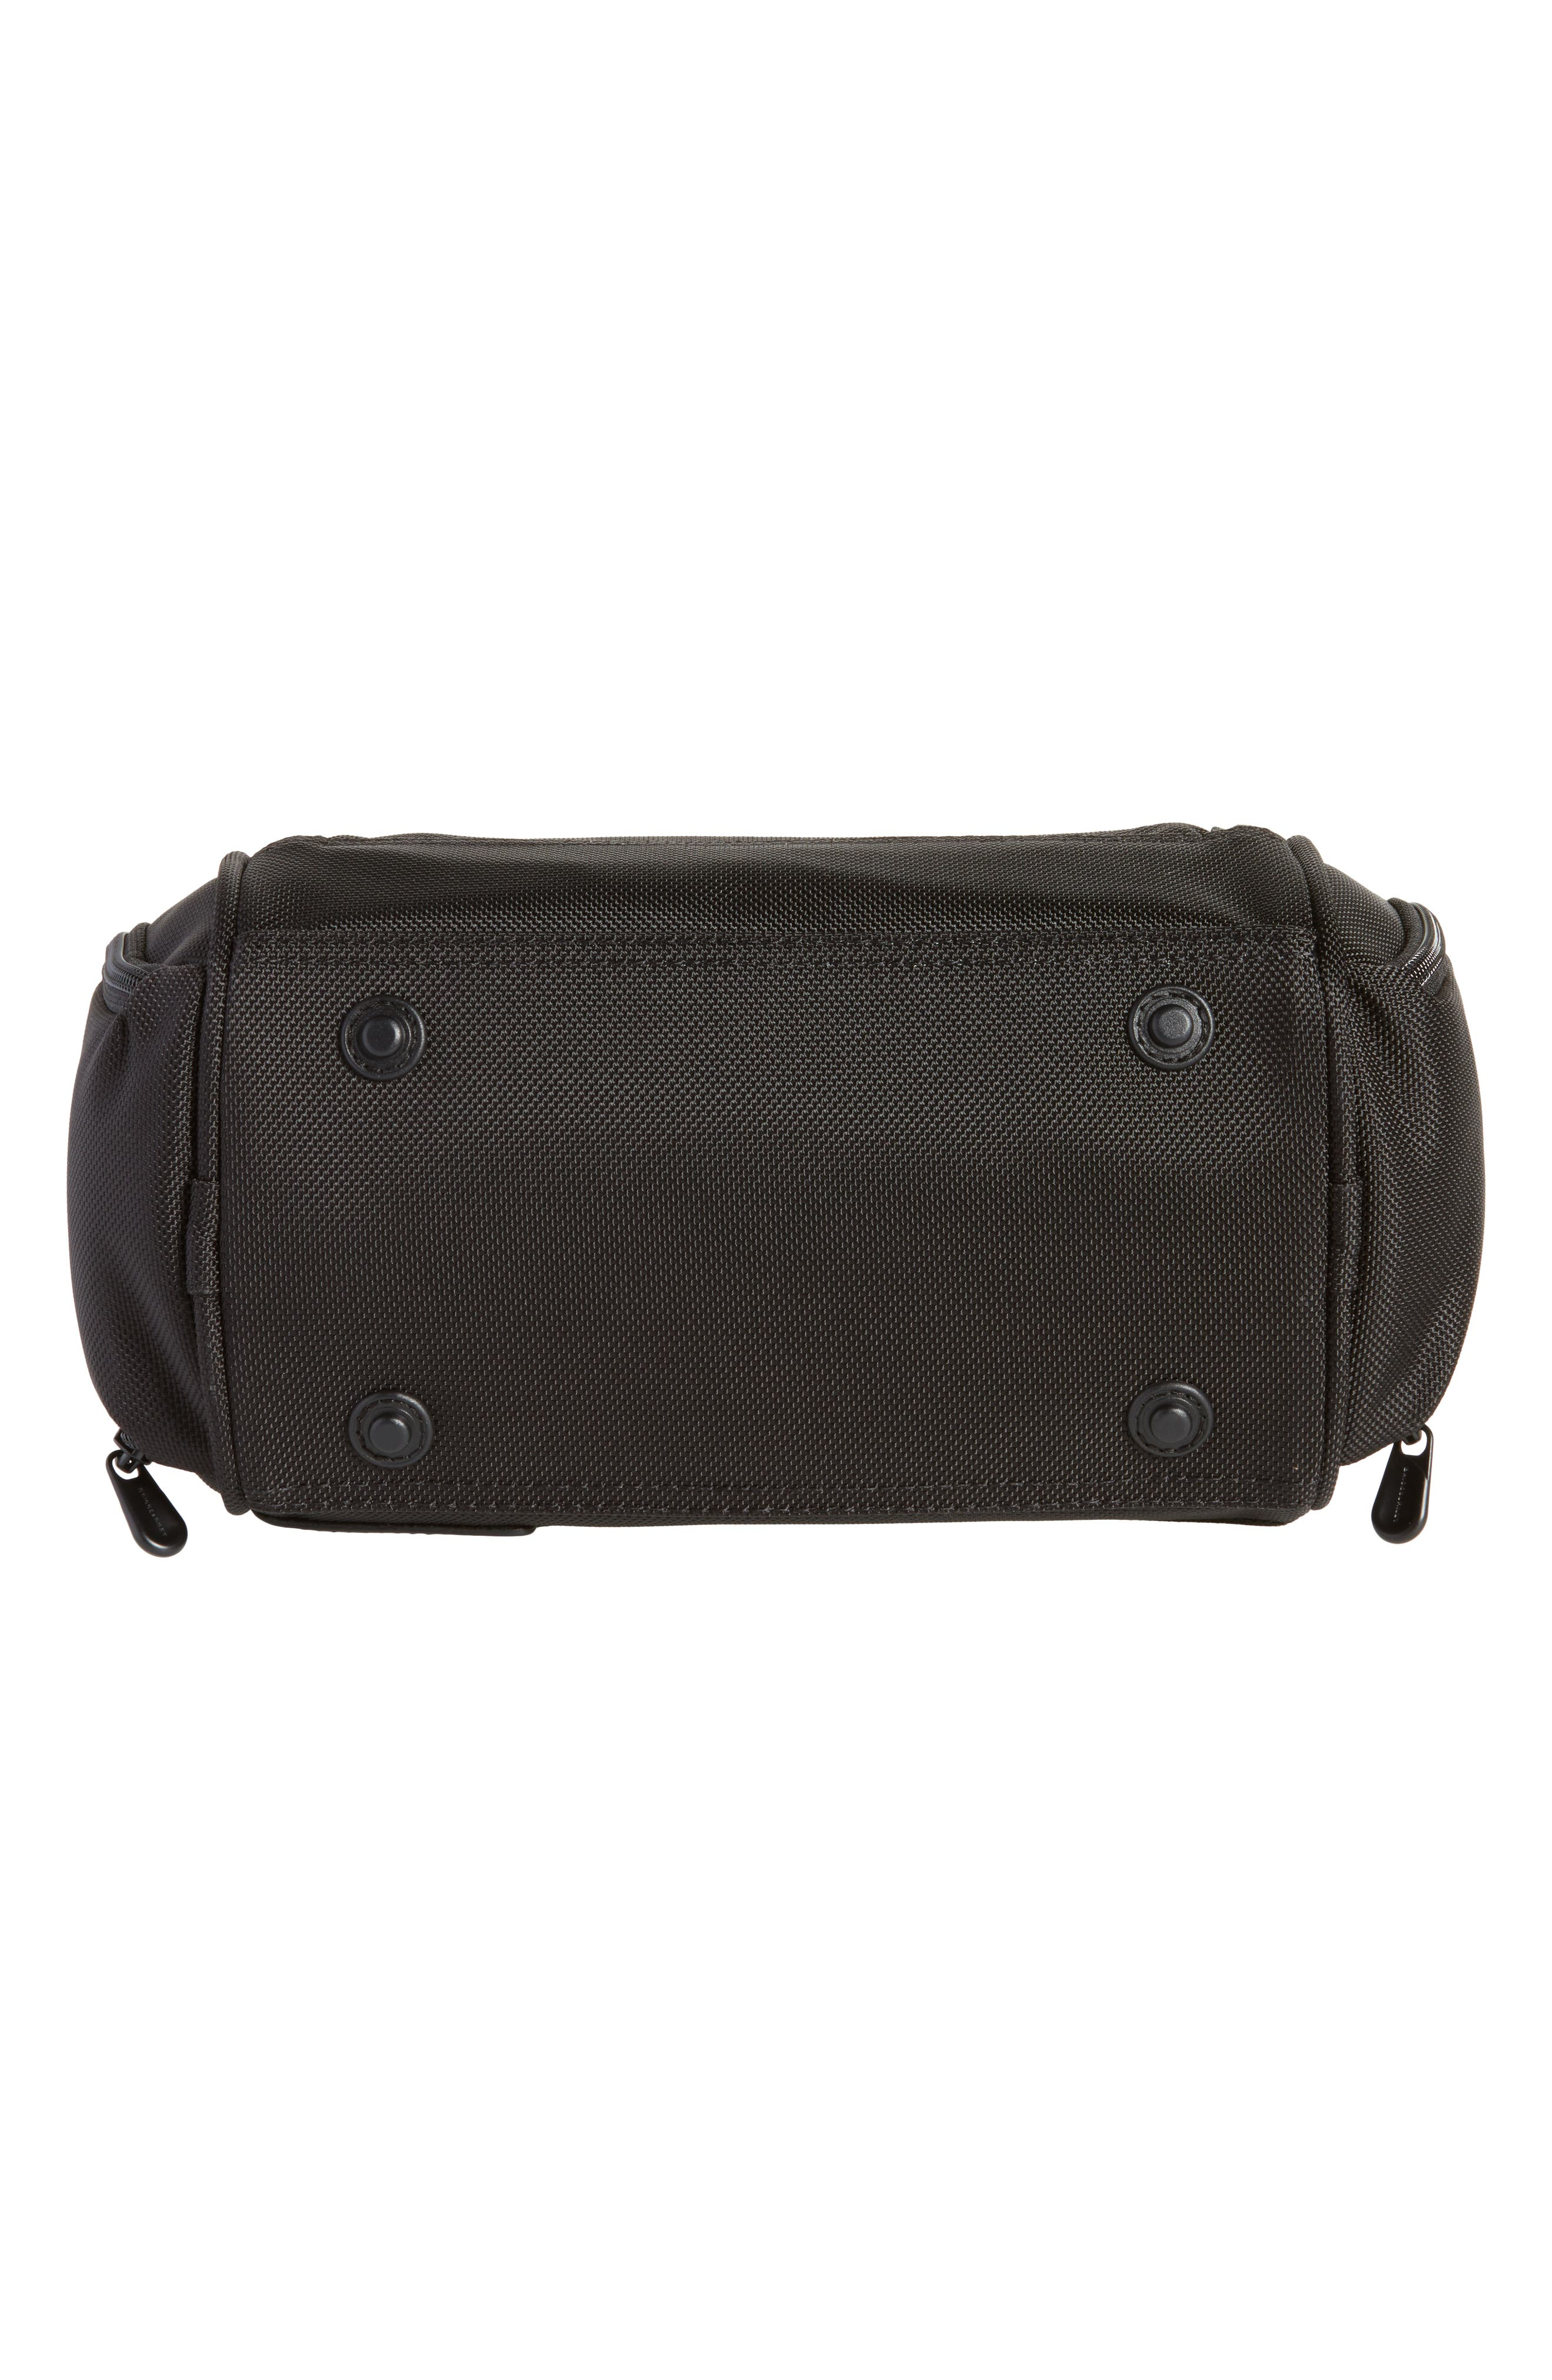 Alternate Image 5  - Briggs & Riley Baseline - Executive Toiletry Kit